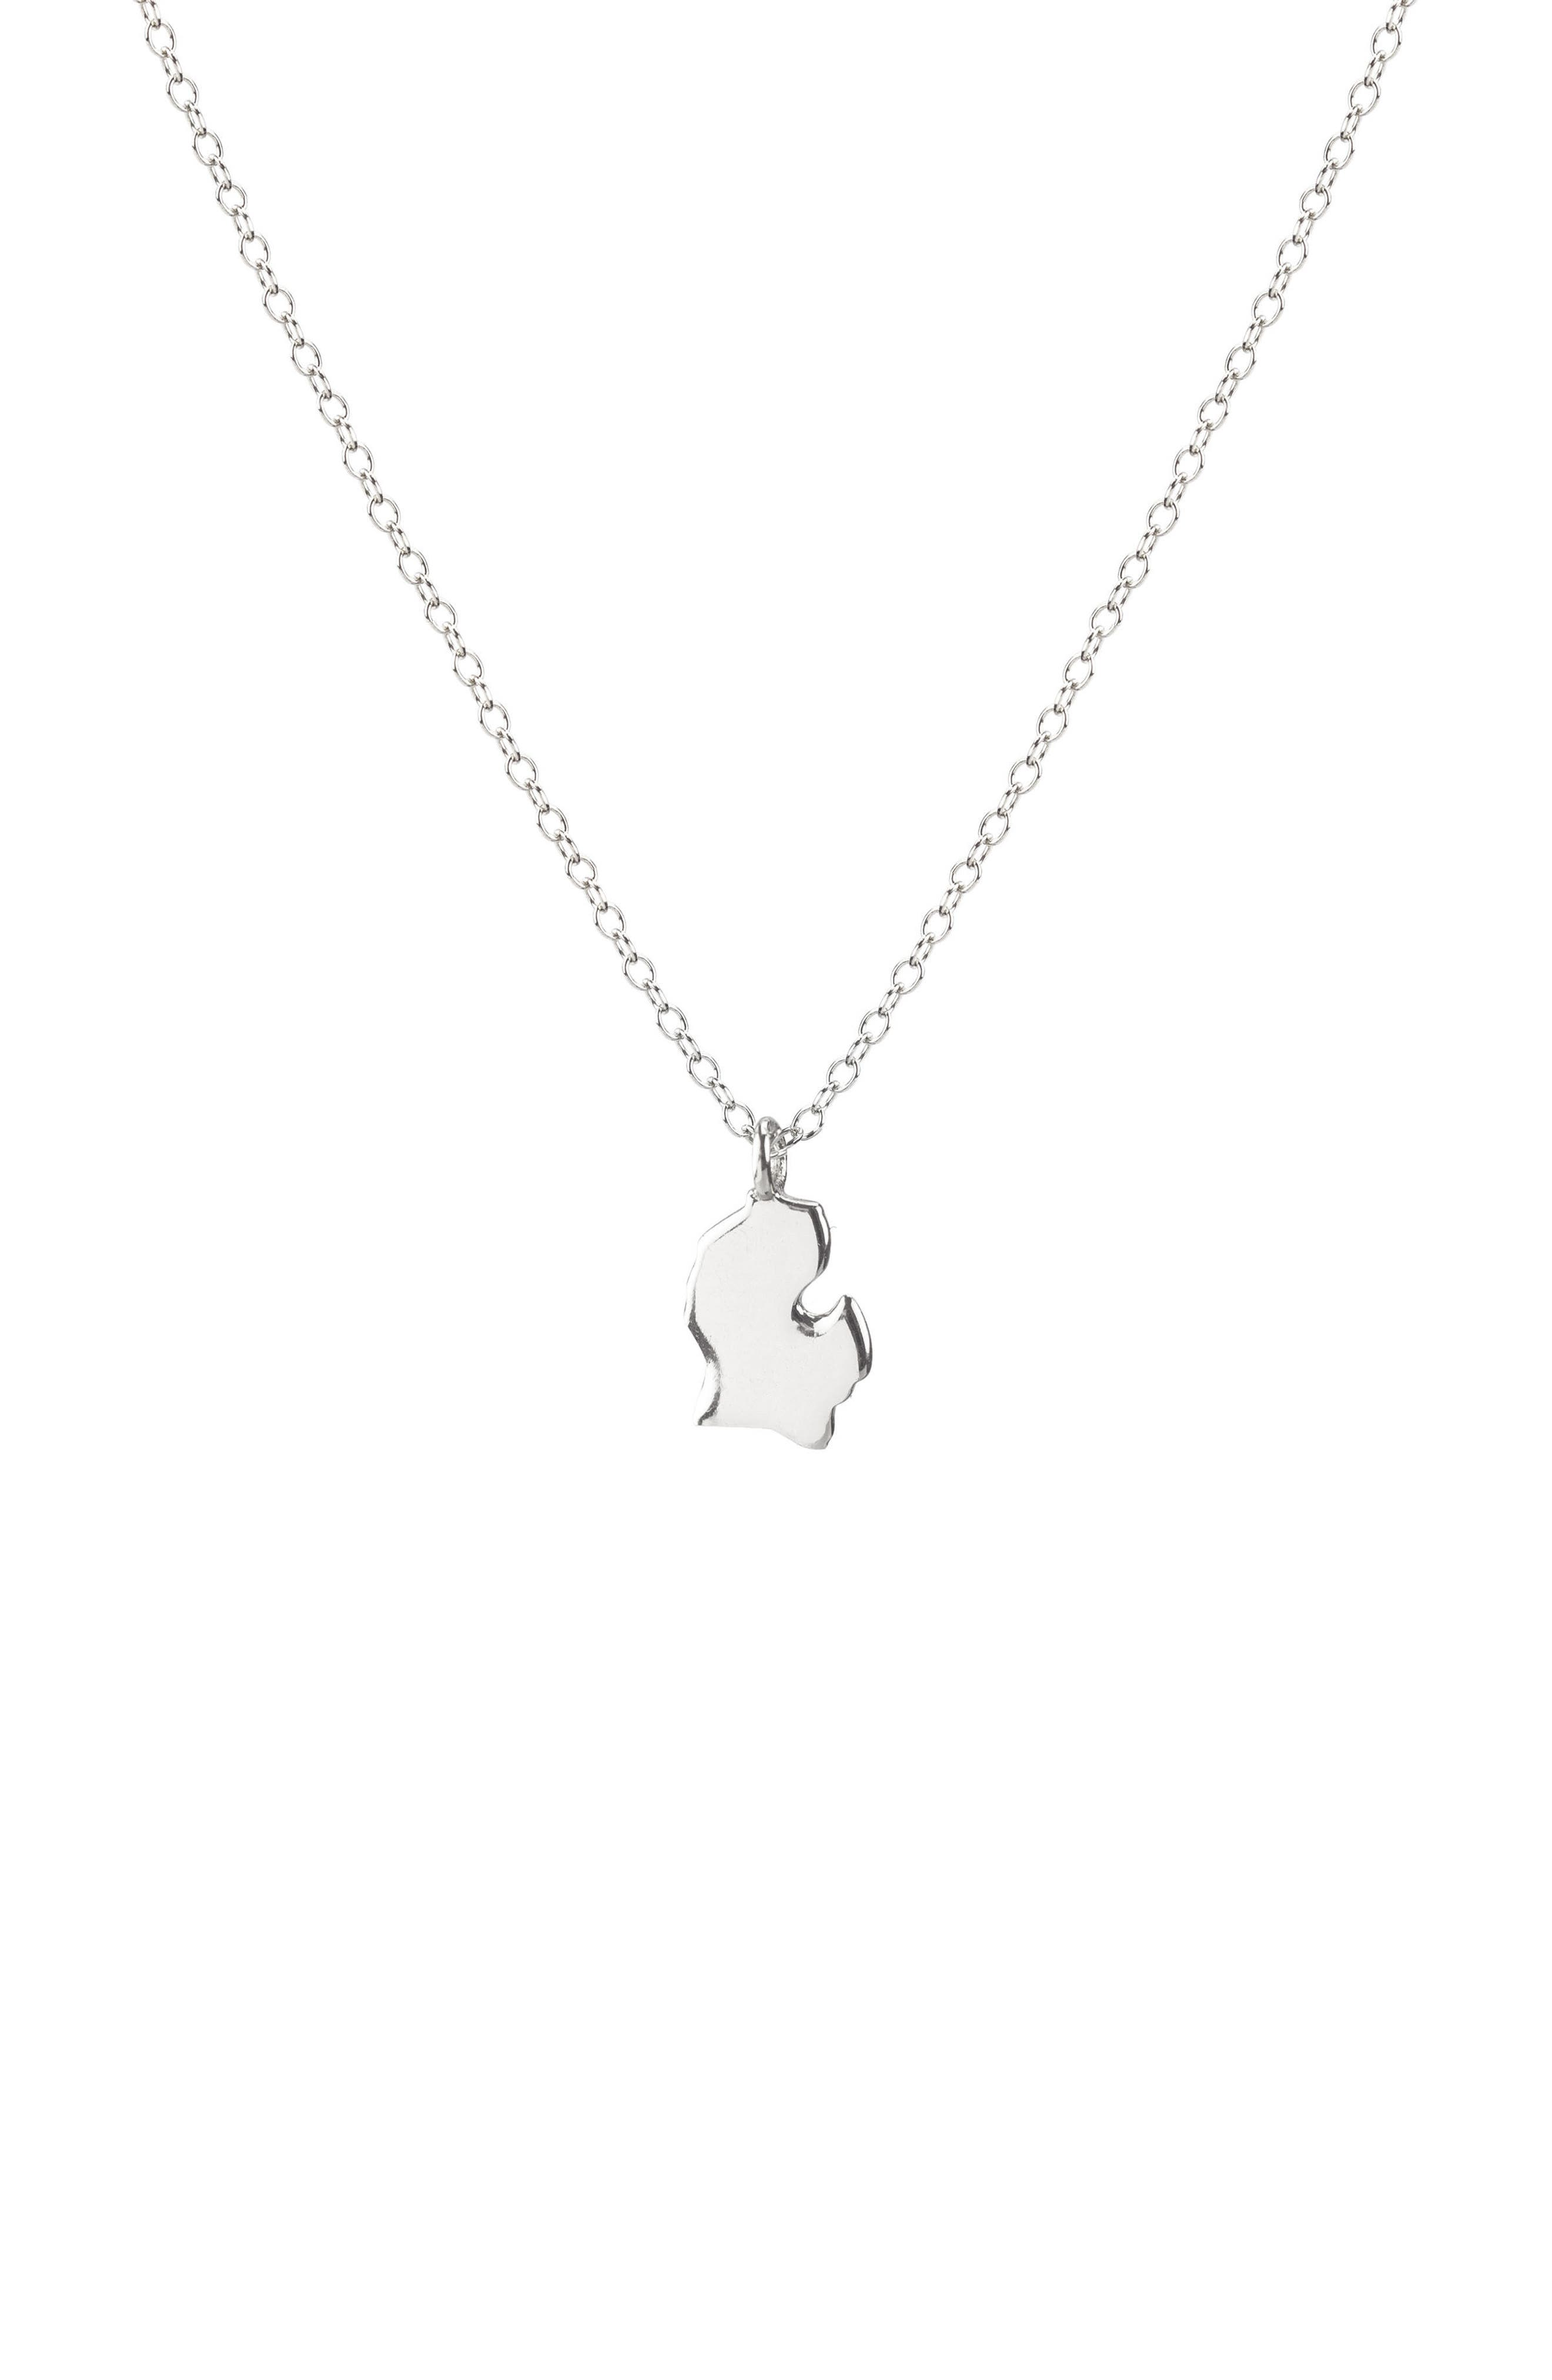 Solid State Charm Necklace,                         Main,                         color, Michigan - Silver